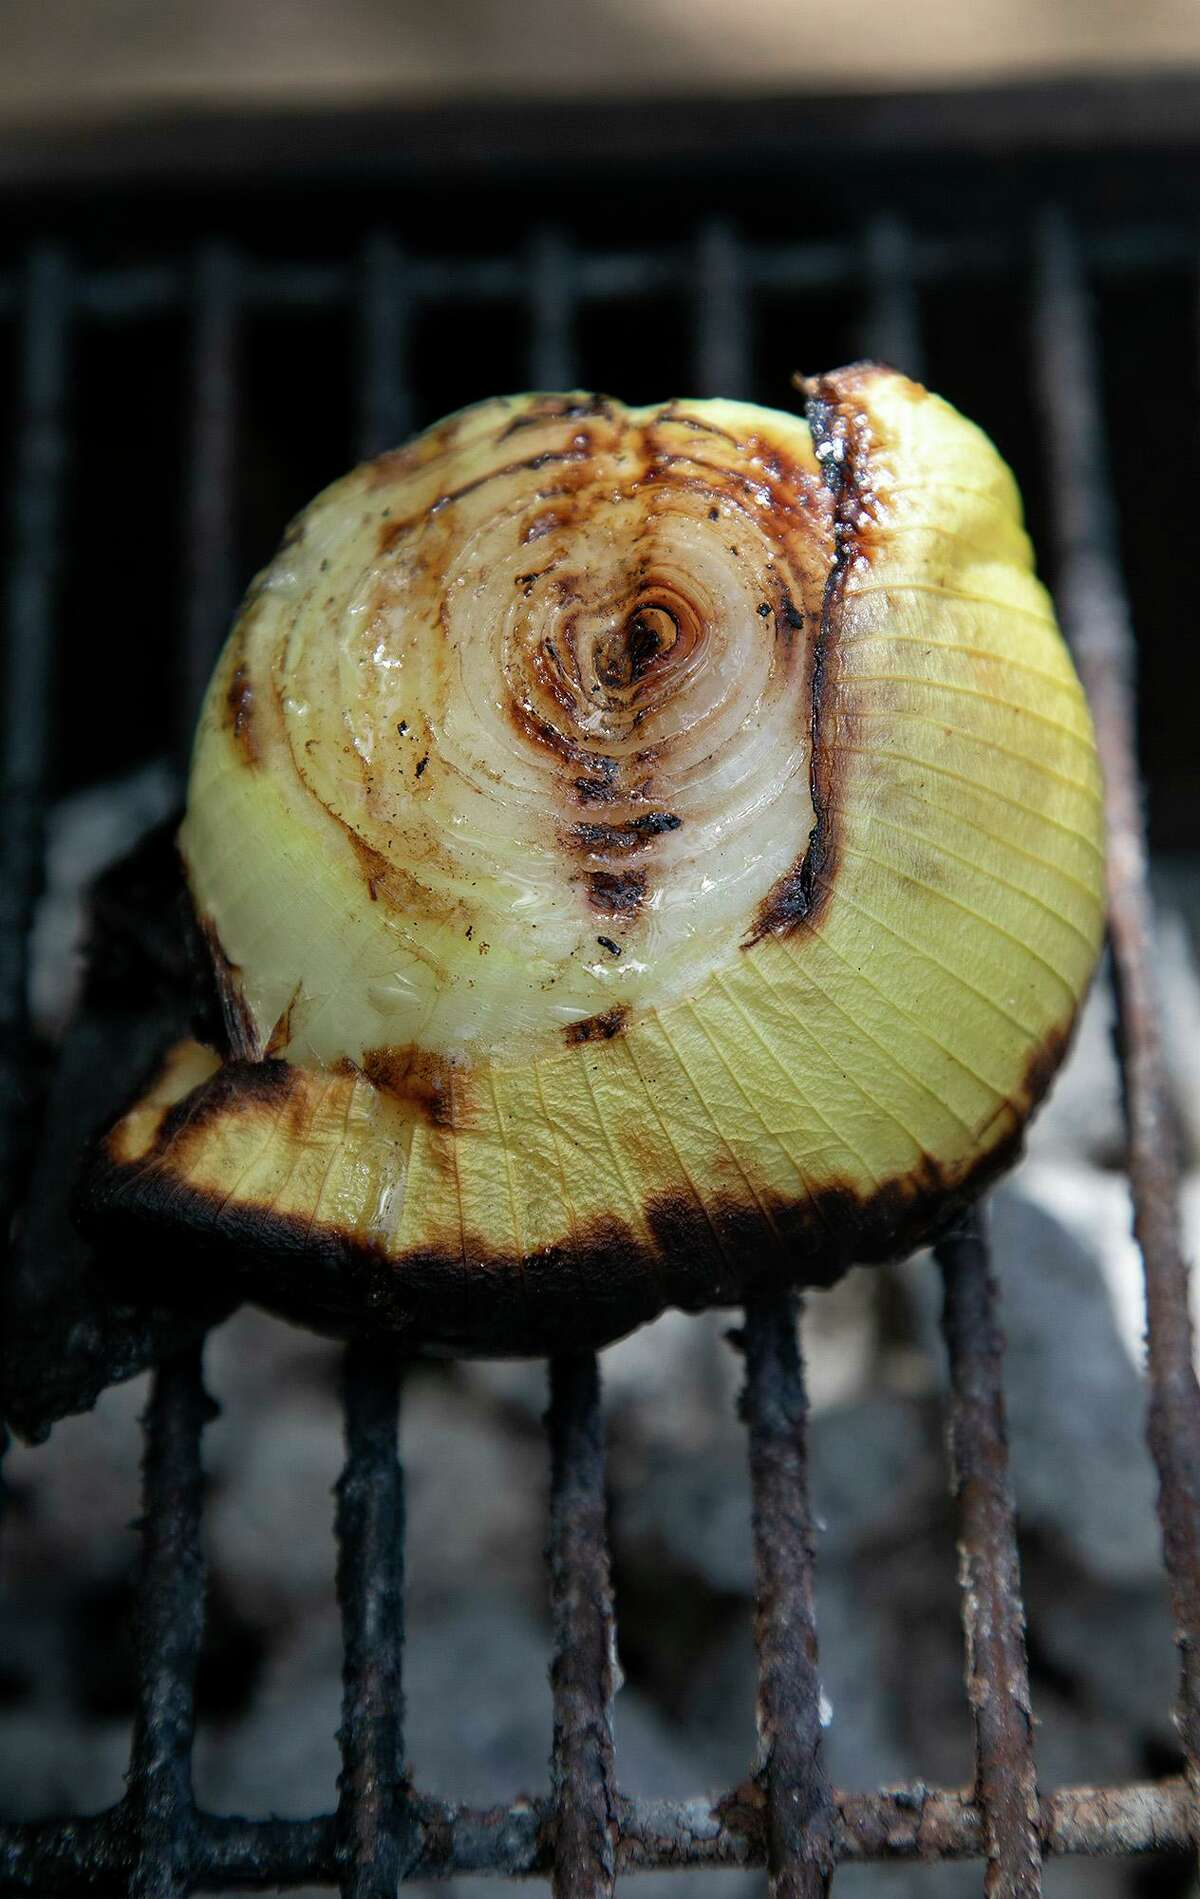 After about 30 minutes on the grill, a harsh onion is transformed into a sweet treat.